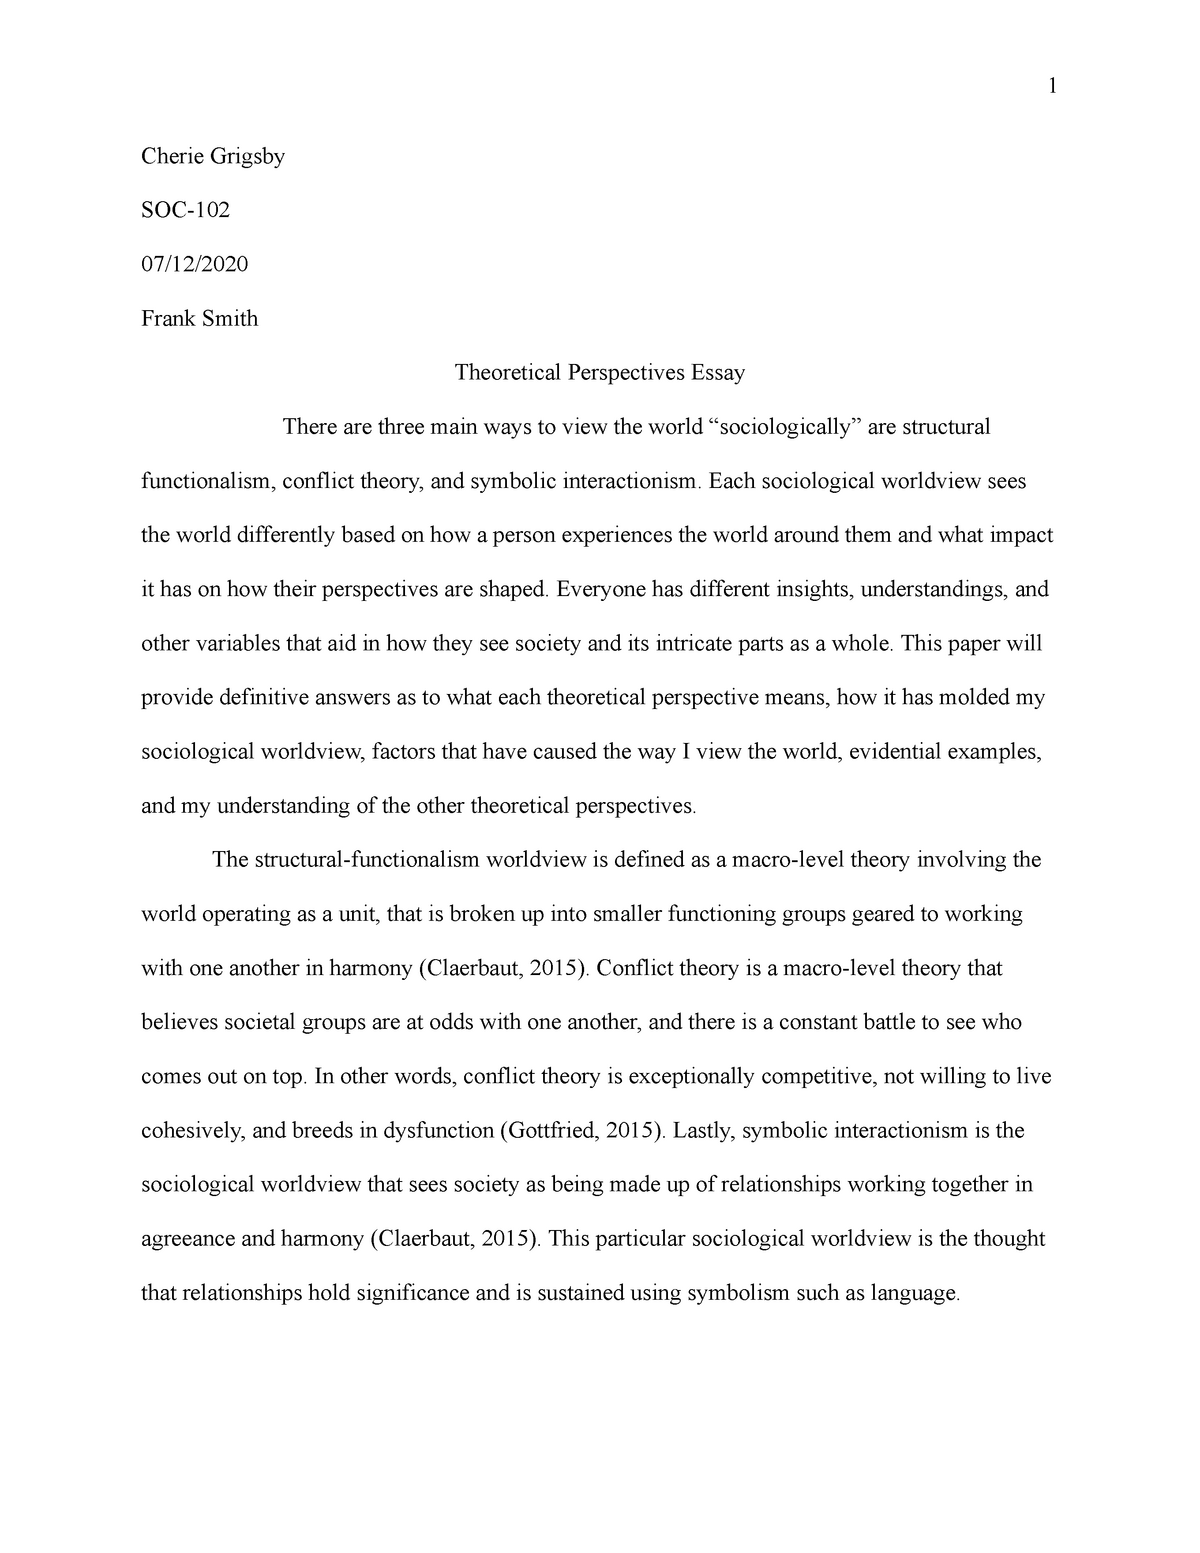 essay on theoretical approach in sociology